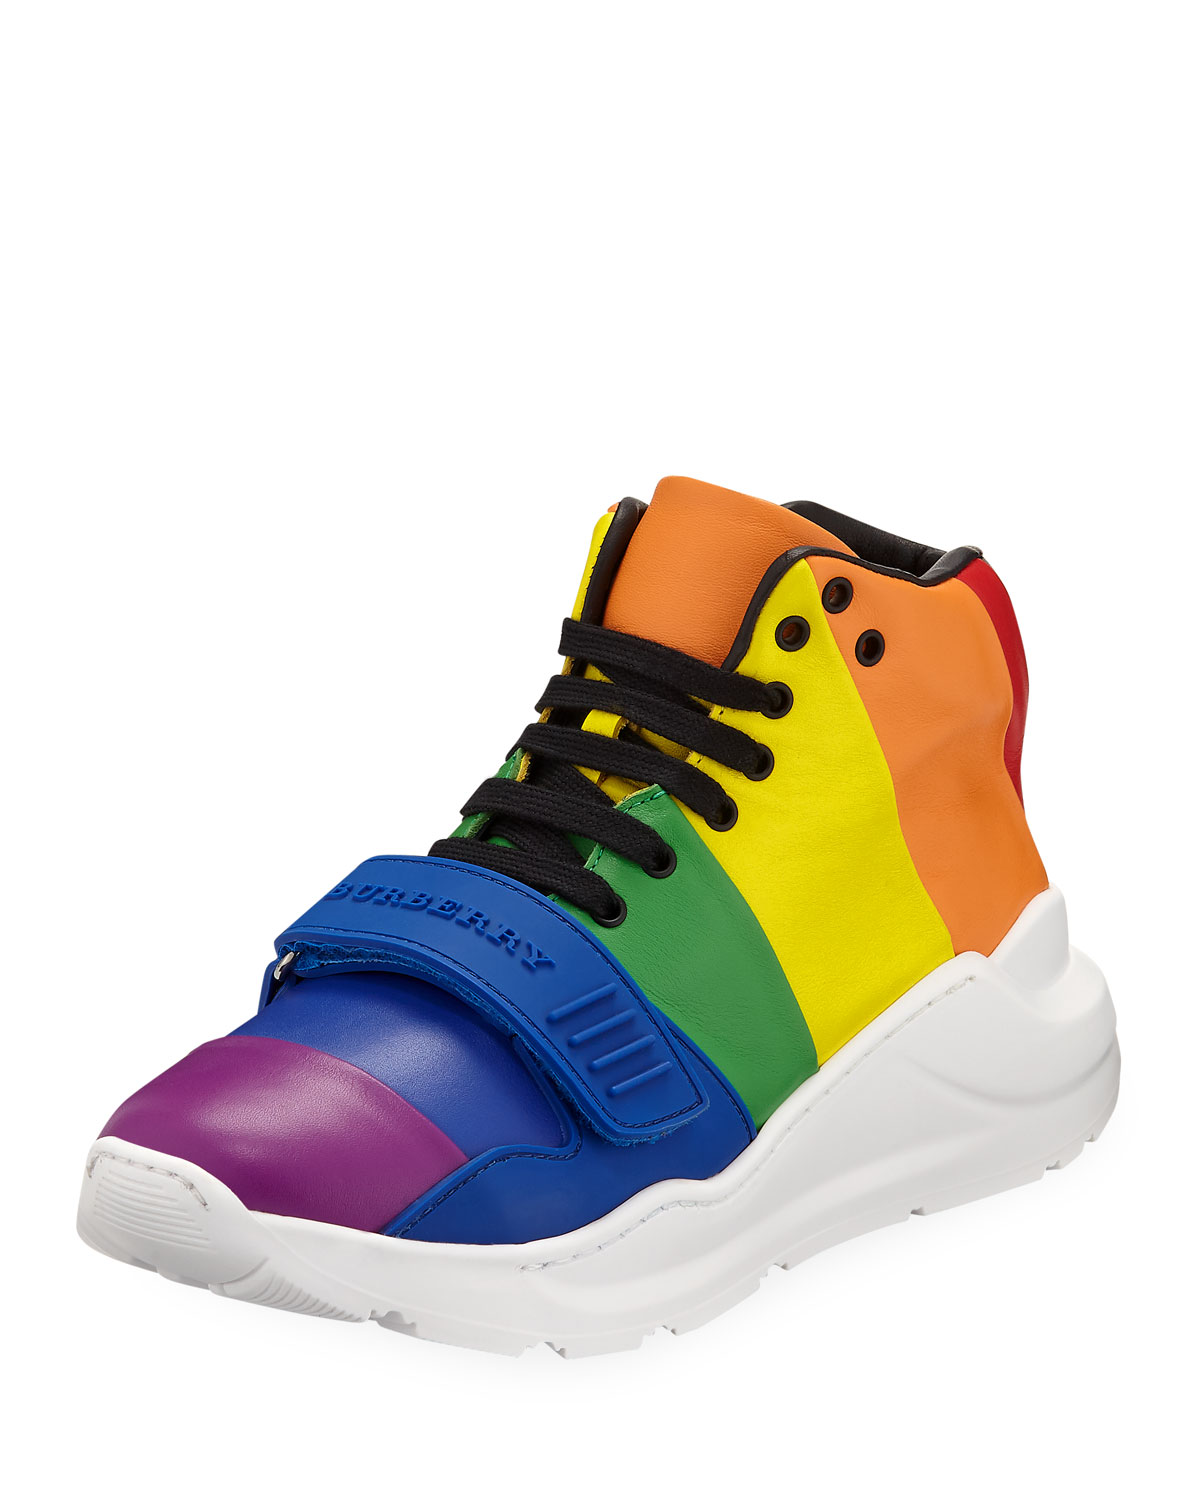 9d0f614b21ffc6 Burberry Regis Rainbow Stripe High-Top Sneakers